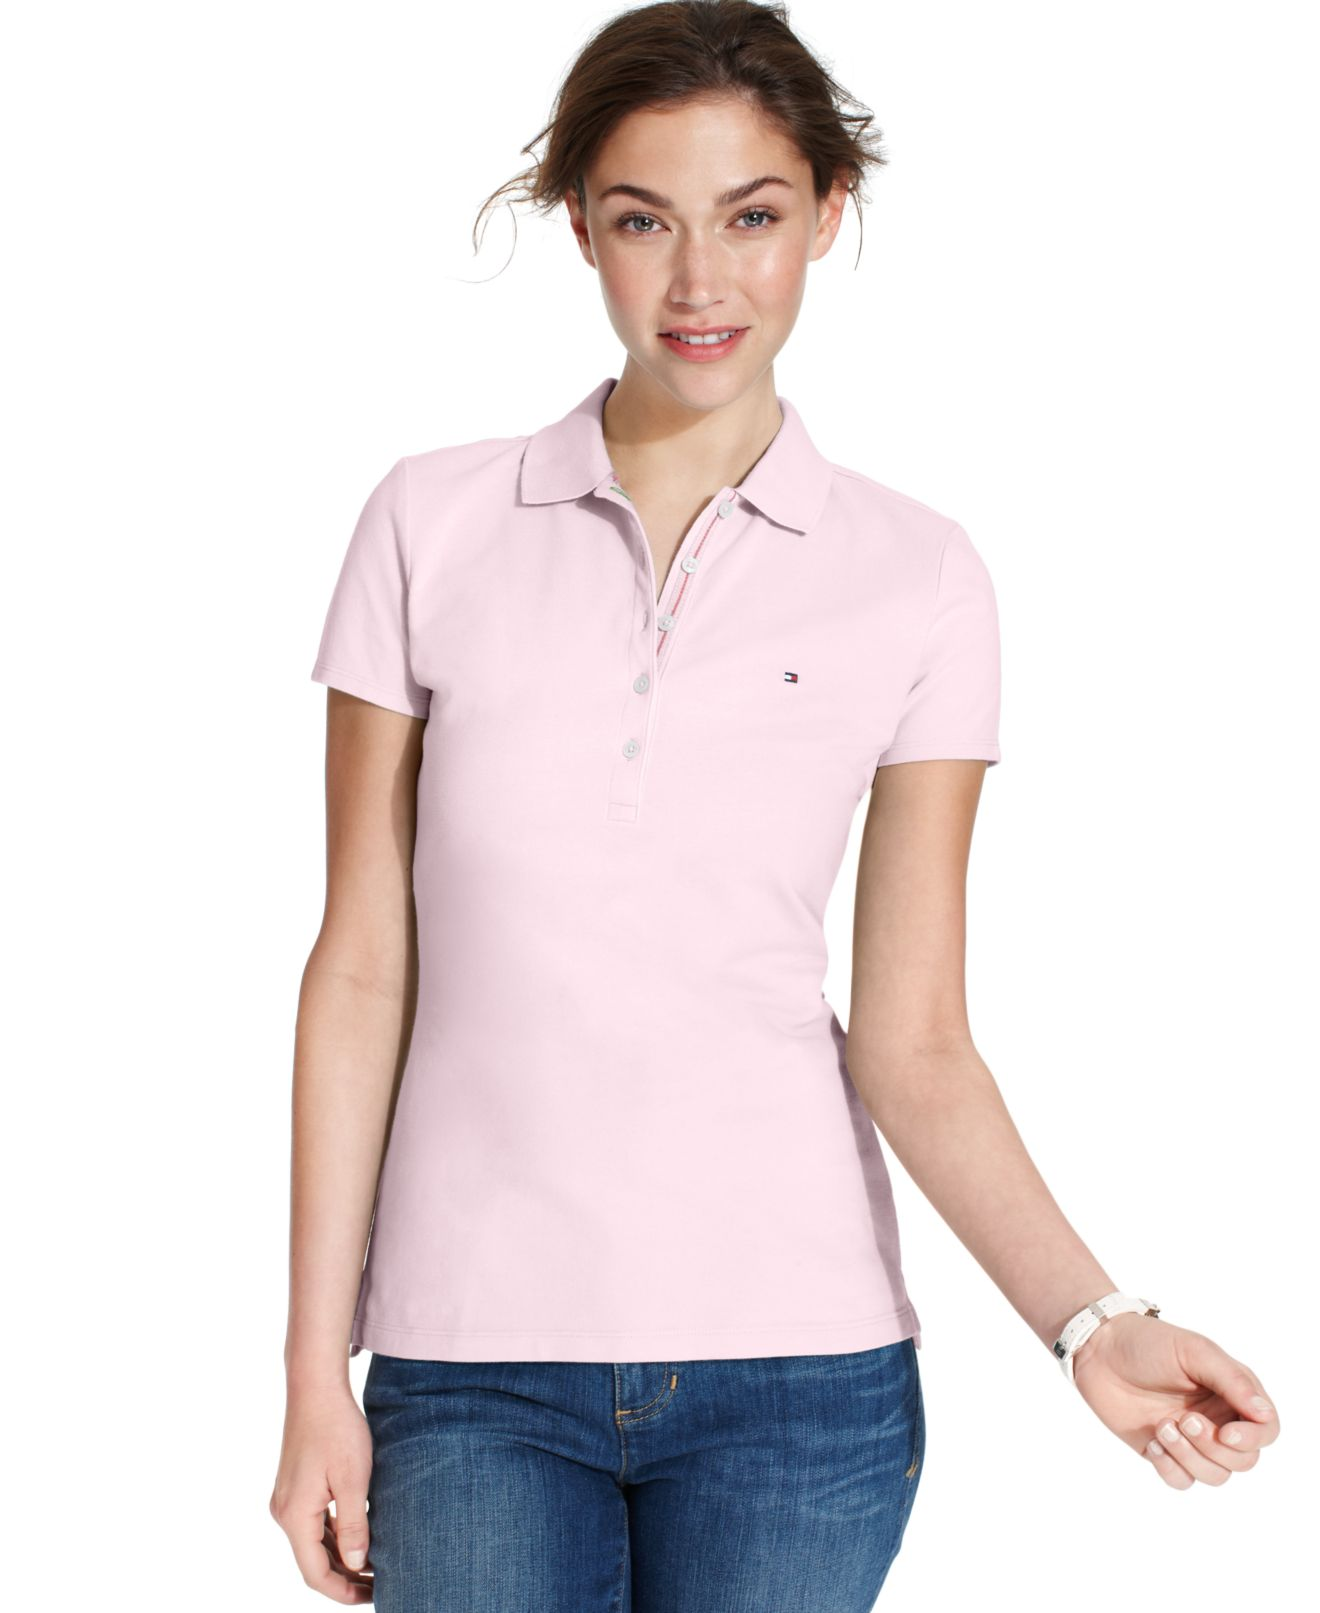 Lacoste Womens Polo Shirt